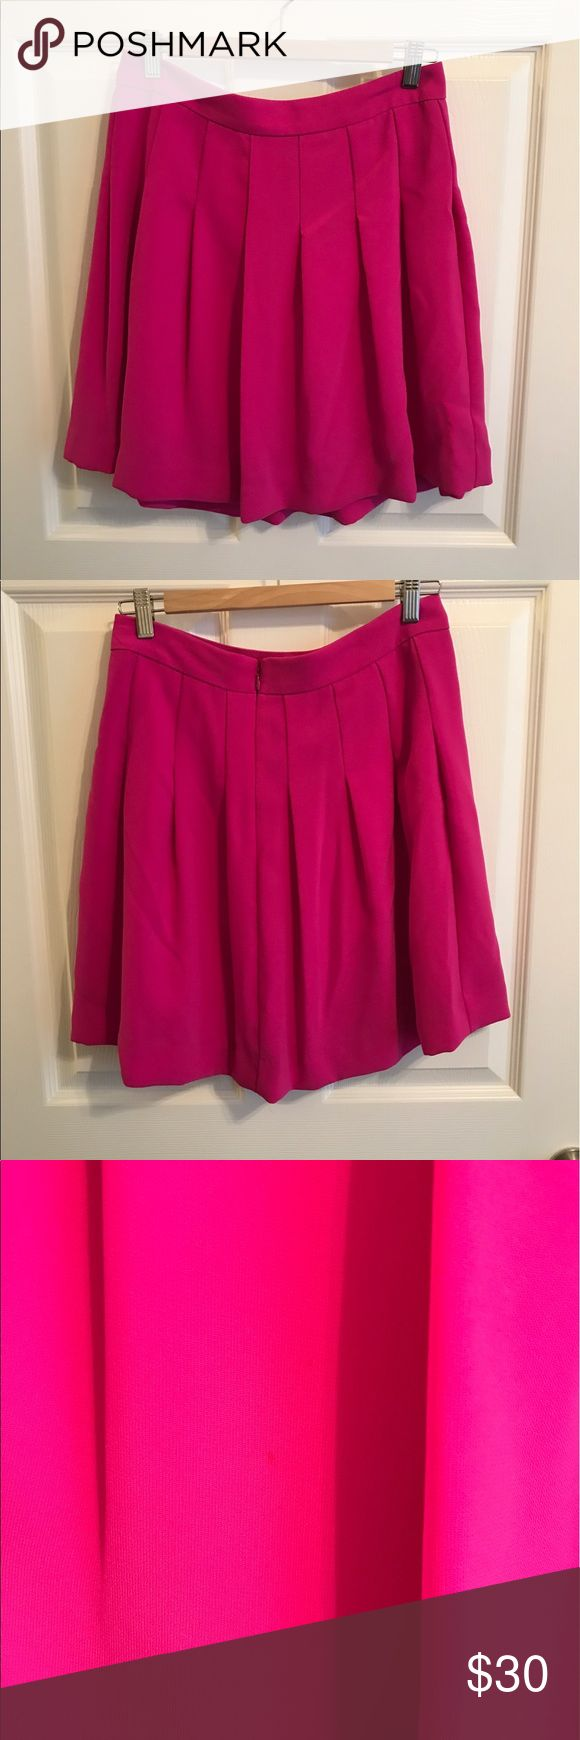 Bright & Fun Pleated Skirt Bright fuchsia pleated skirt that falls above the knee. Back zipper and very small stain on front...picture attached - not noticeable. Worn only a few times. J. Crew Skirts Mini